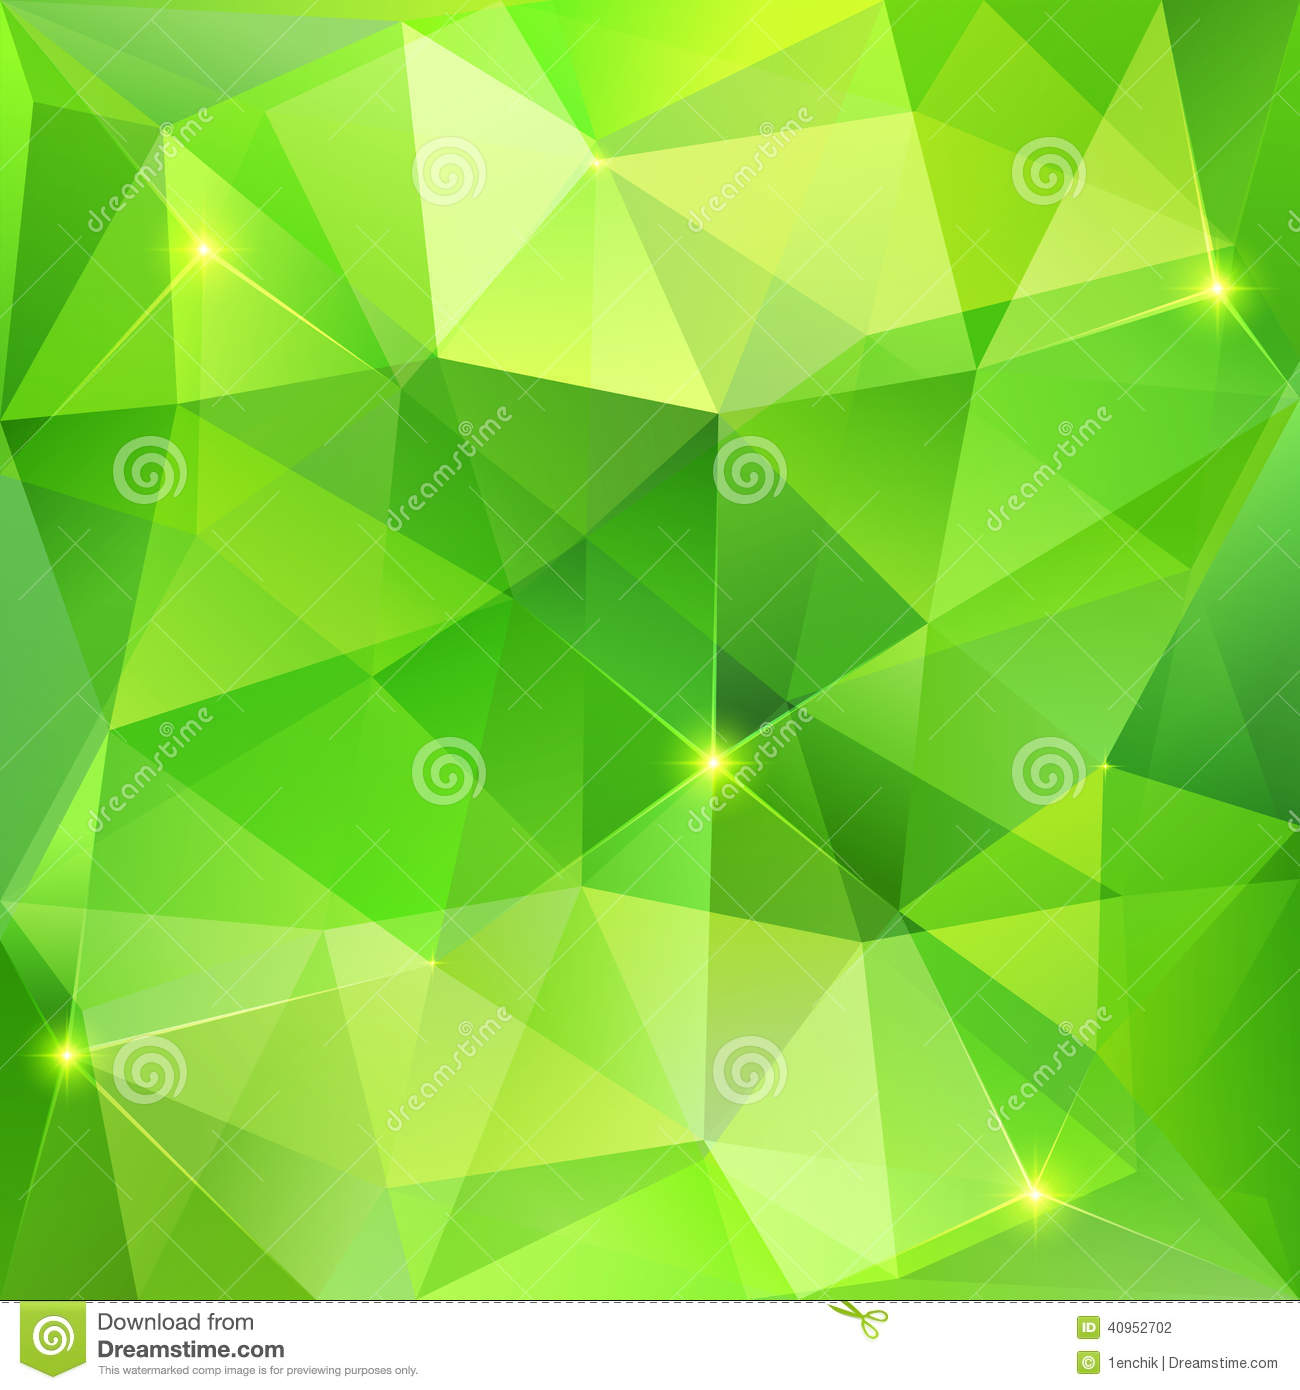 Green Bushy Foliage Texture 340444288 further San Diego Skyline Redux also Holiday Inspiration St Patricks Day additionally Free Space Waves Tileable Twitter Background besides Emerald Green Marble 3. on emerald green background wallpaper